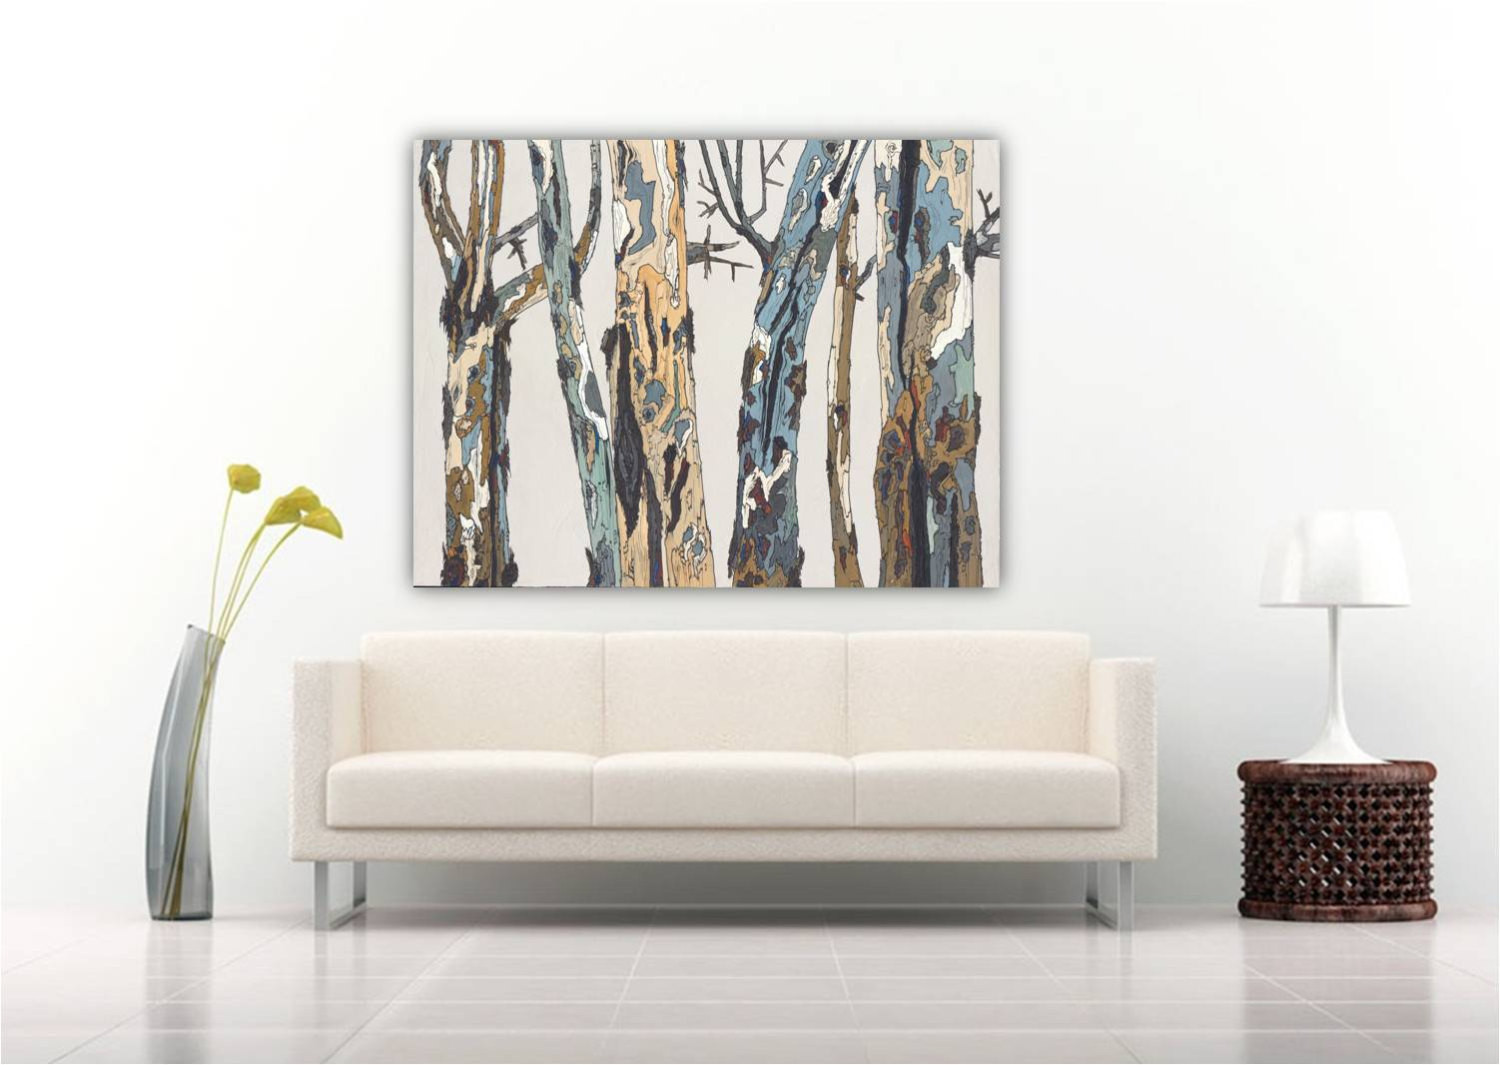 Best ideas about Extra Large Wall Art . Save or Pin Huge art extra large wall art oversized canvas print white Now.